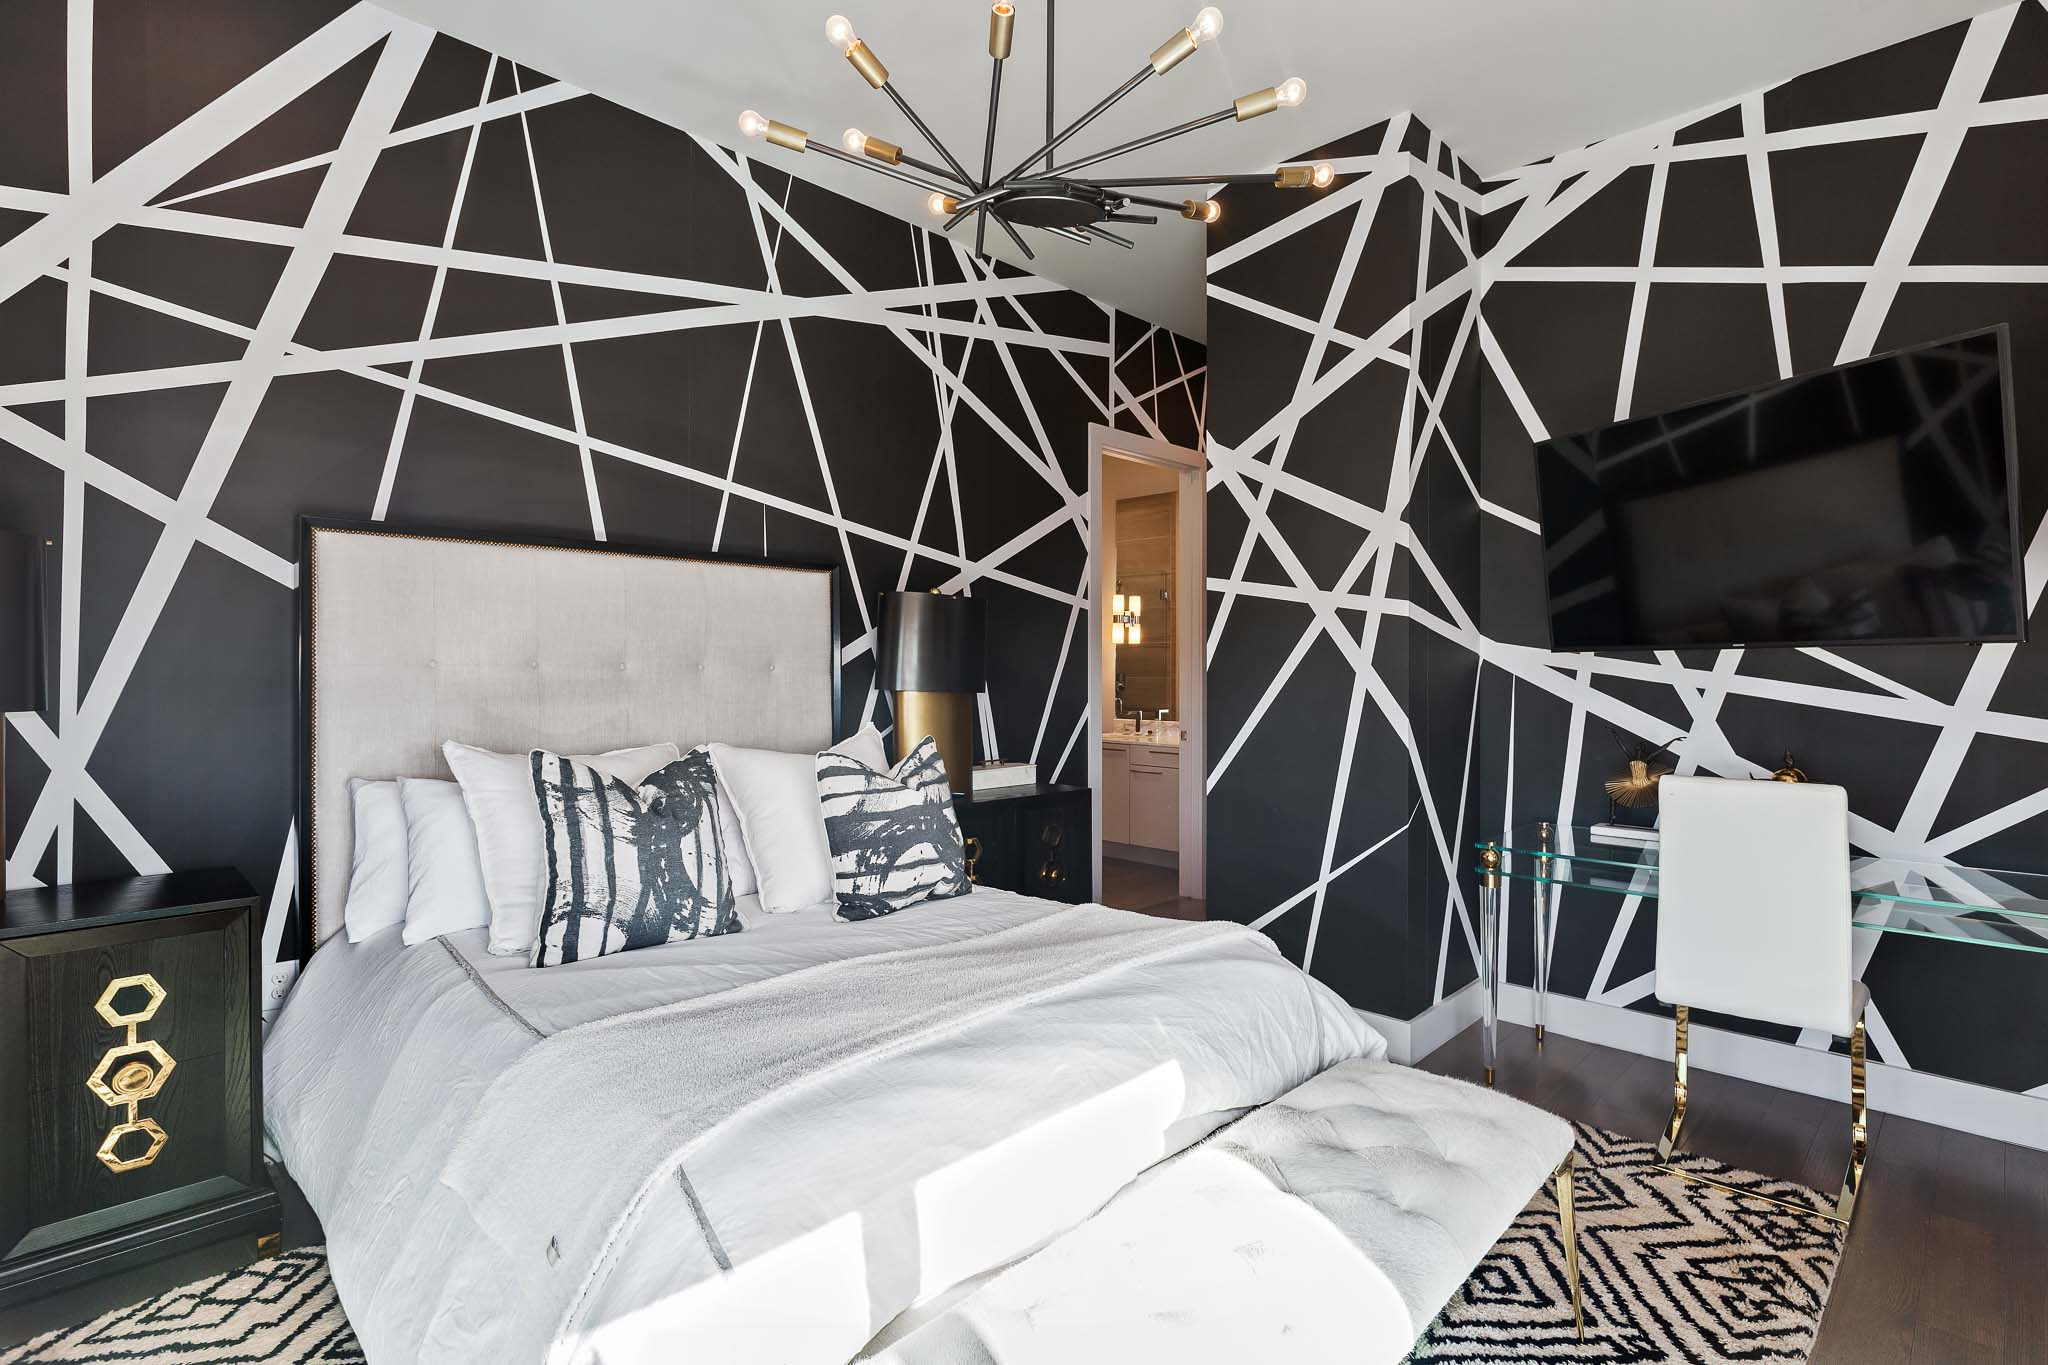 Bedroom in penthouse with black modern accent walls